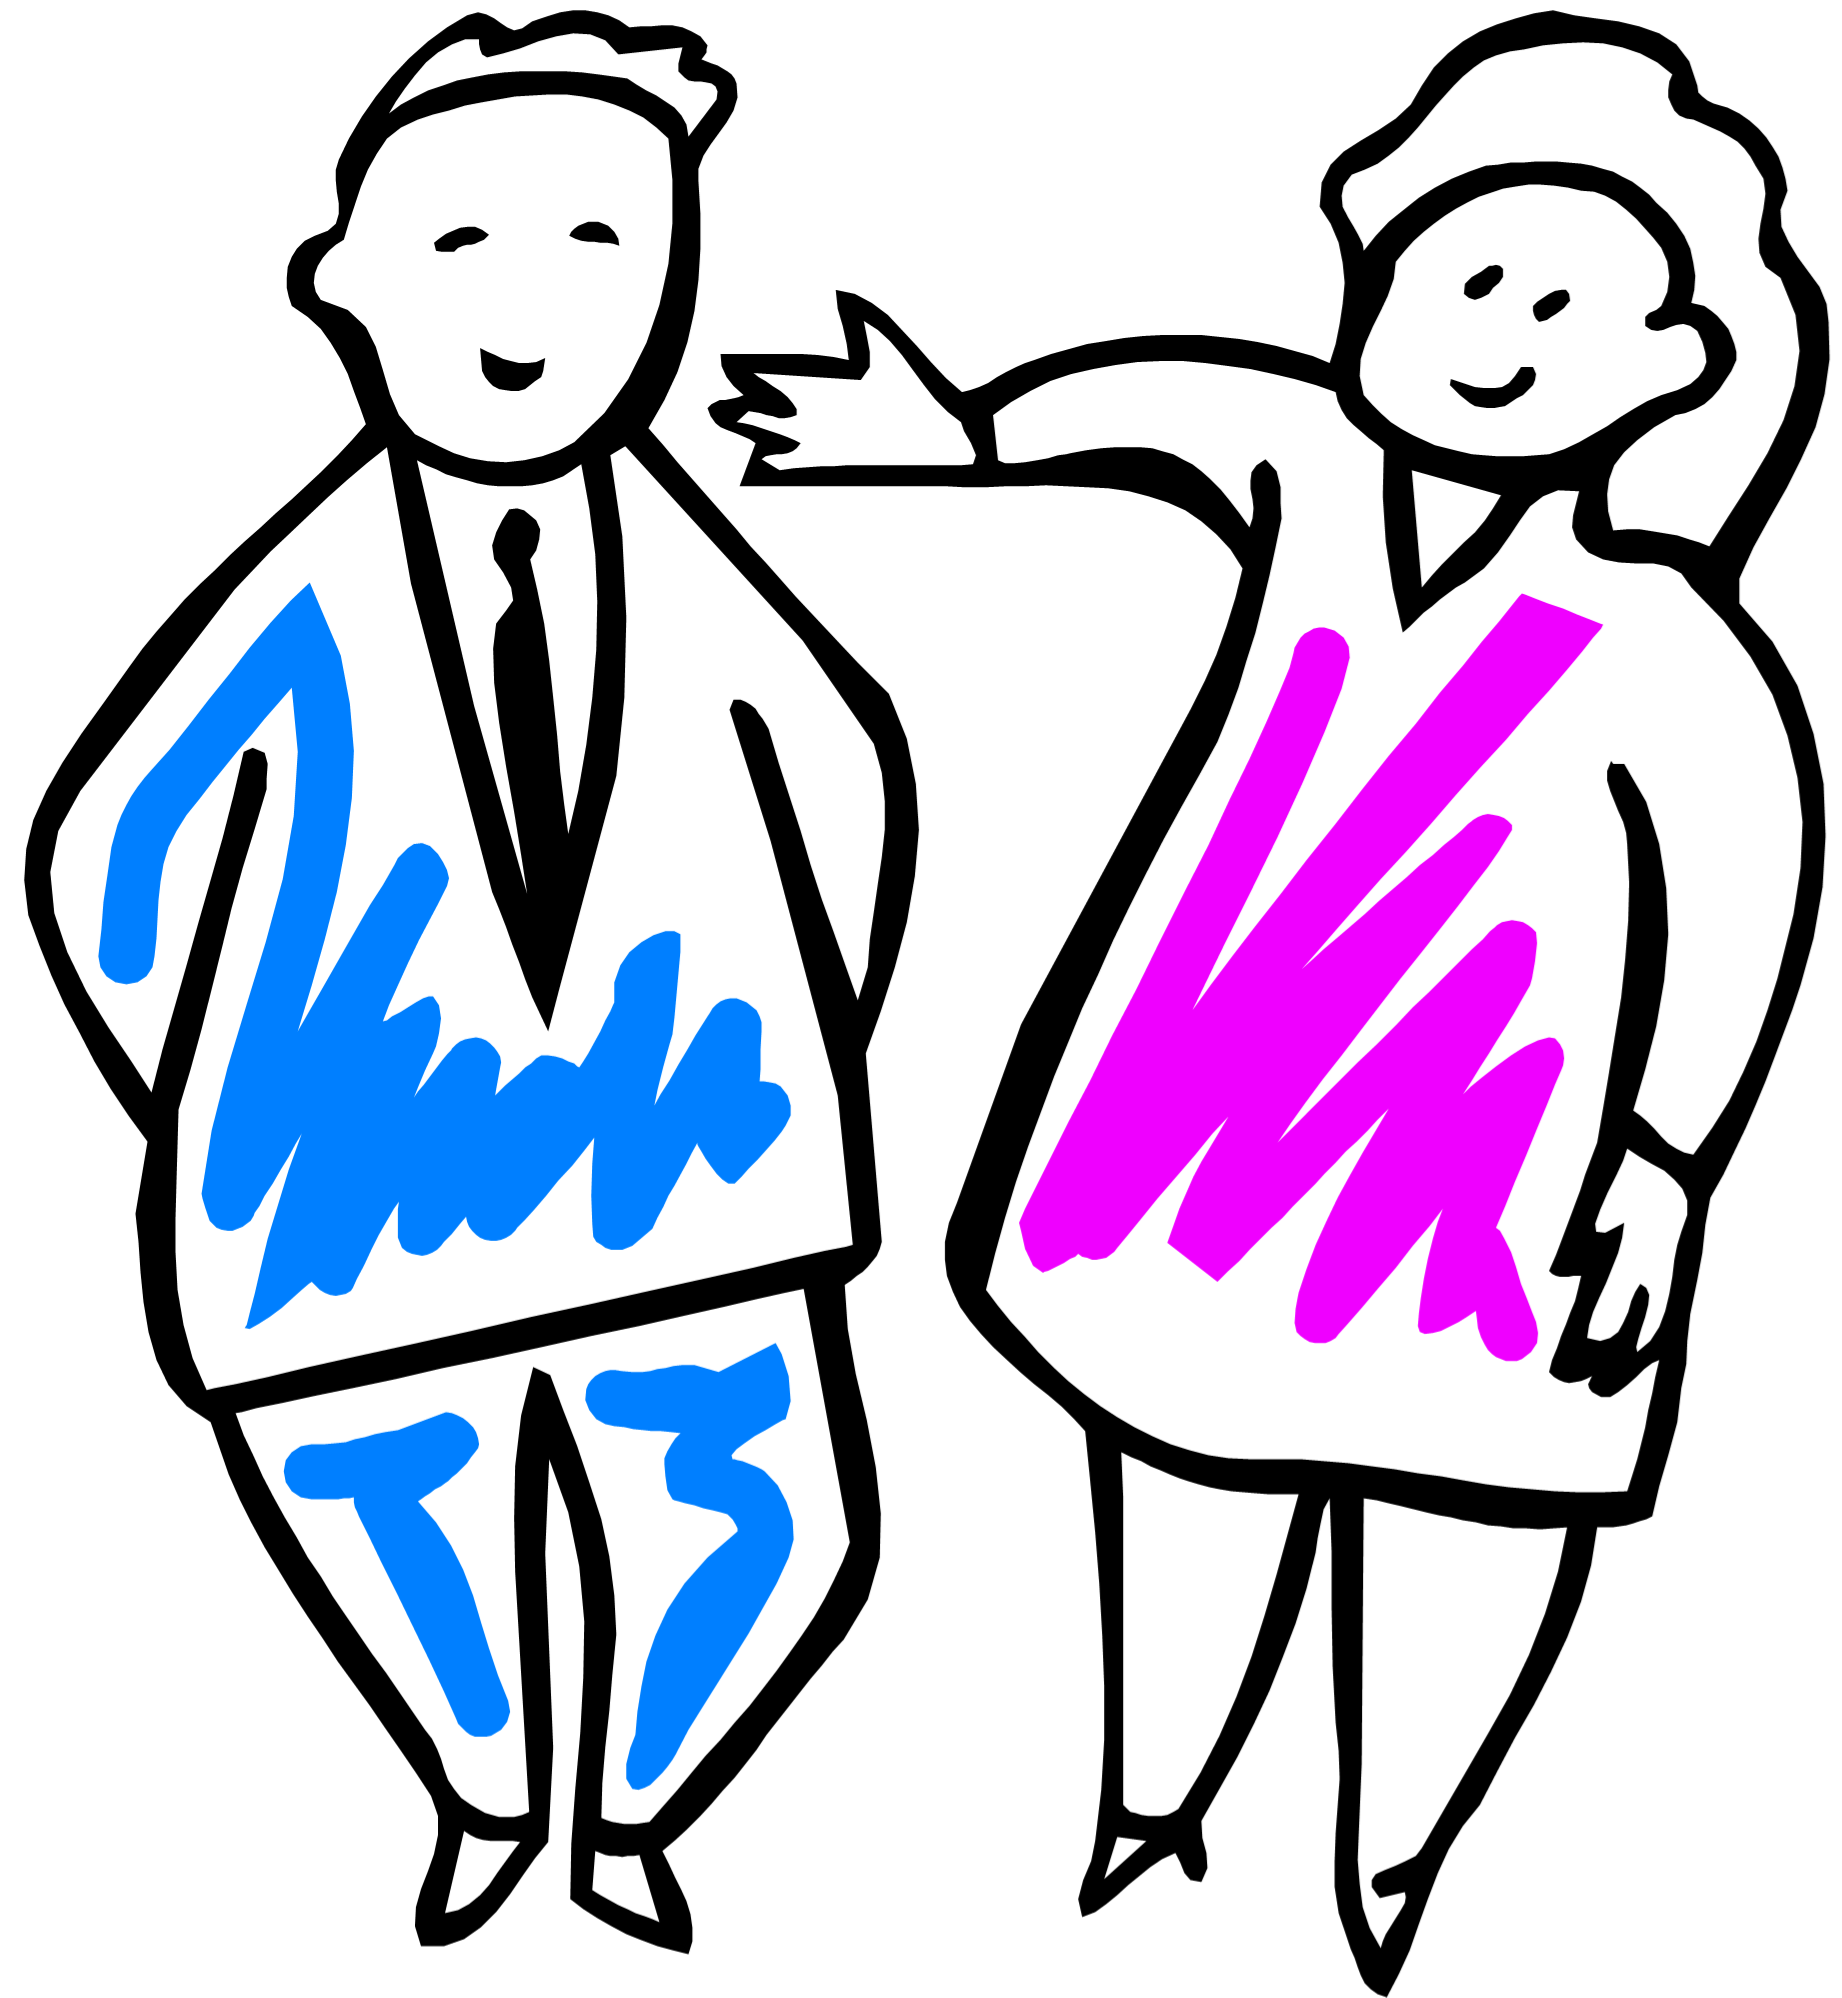 males and females The characteristics seen in males can also be seen in females, though females often have milder intellectual disability and a milder presentation of the syndrome's behavioral and physical features.